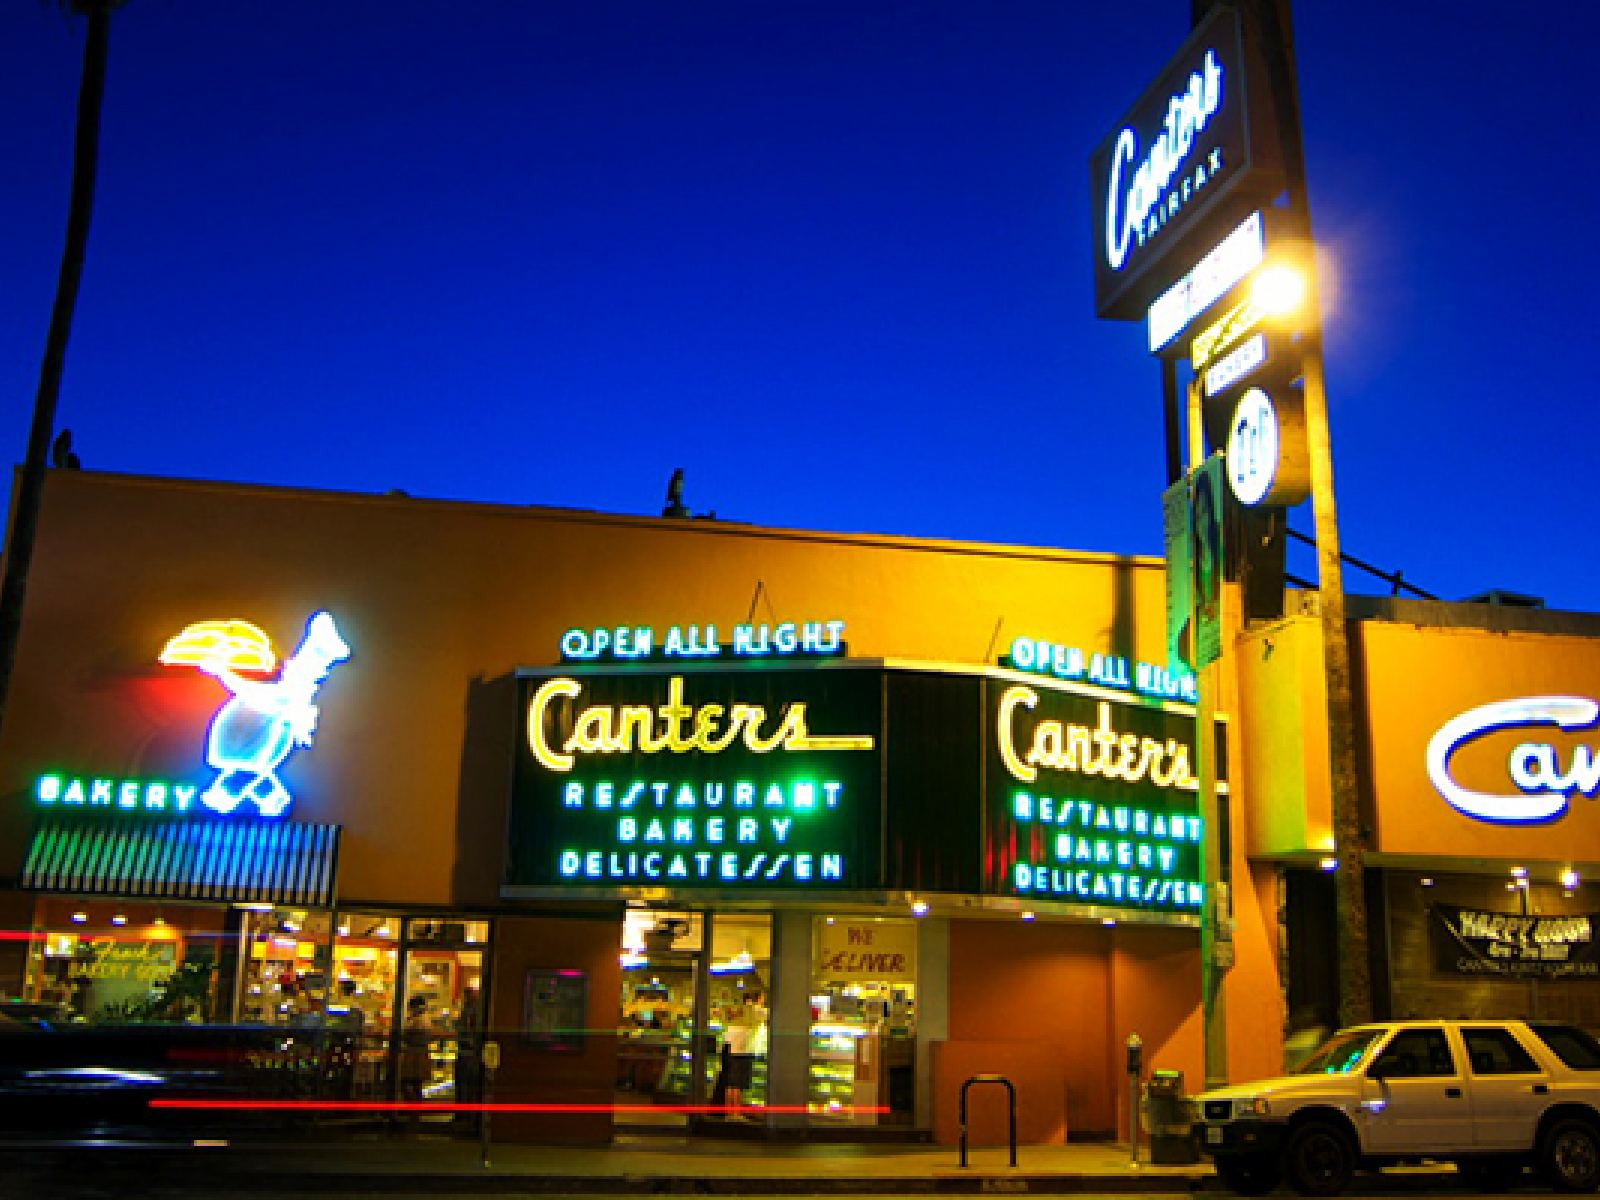 Main image for article titled Canter's Deli: The Story of An L.A. Icon